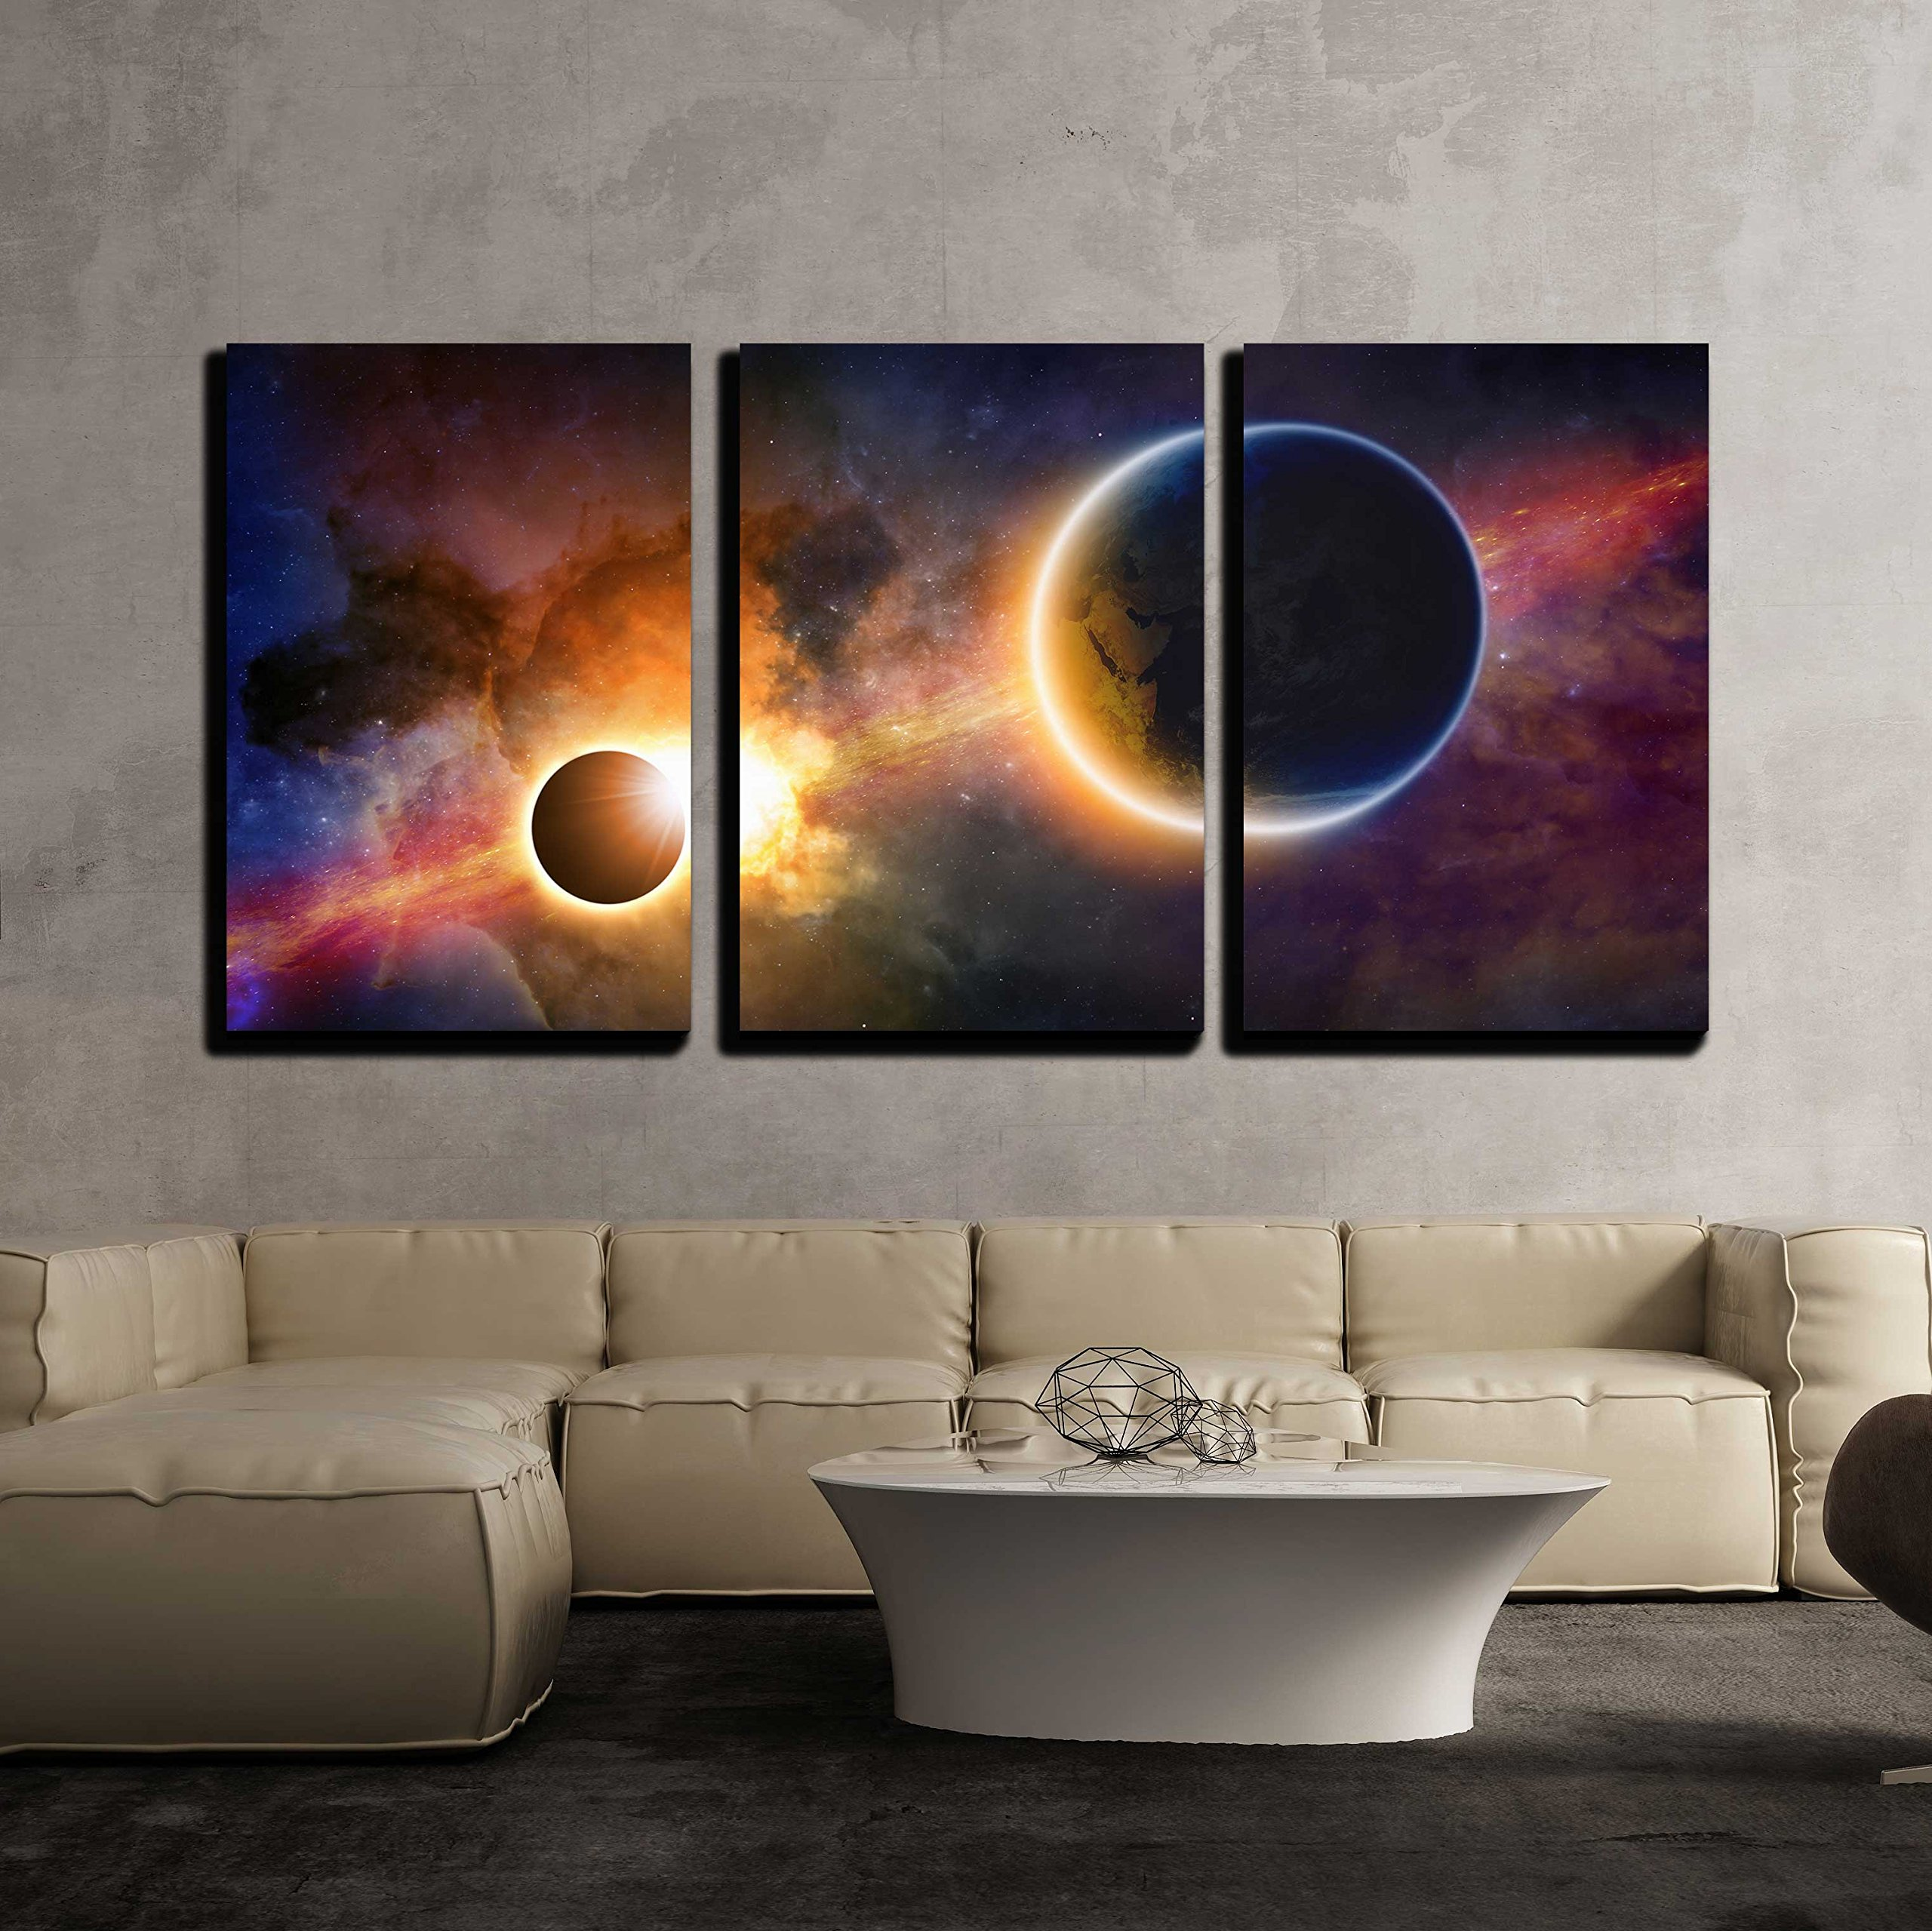 wall26 - 3 Piece Canvas Wall Art - Abstract Scientific Background - Glowing Planet Earth in Space - Modern Home Decor Stretched and Framed Ready to Hang - 24''x36''x3 Panels